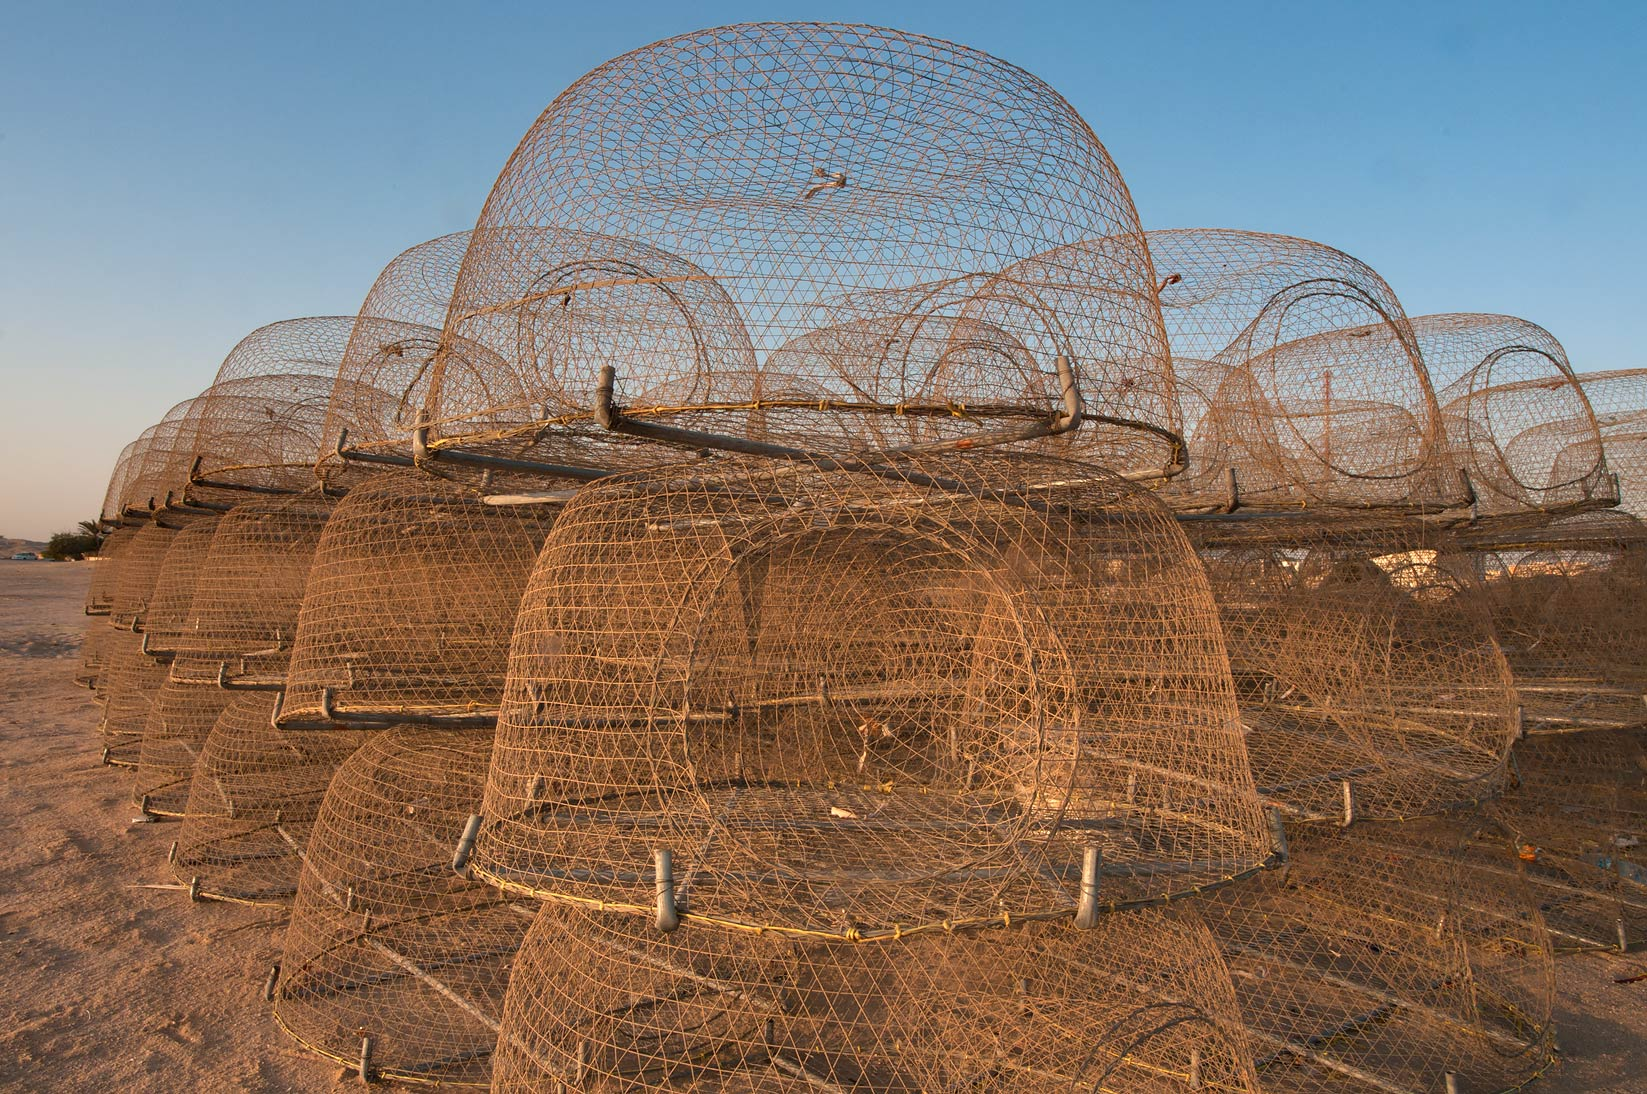 Domed wire fish traps (local name gargoor) at sunrise. Al Wakrah, Qatar